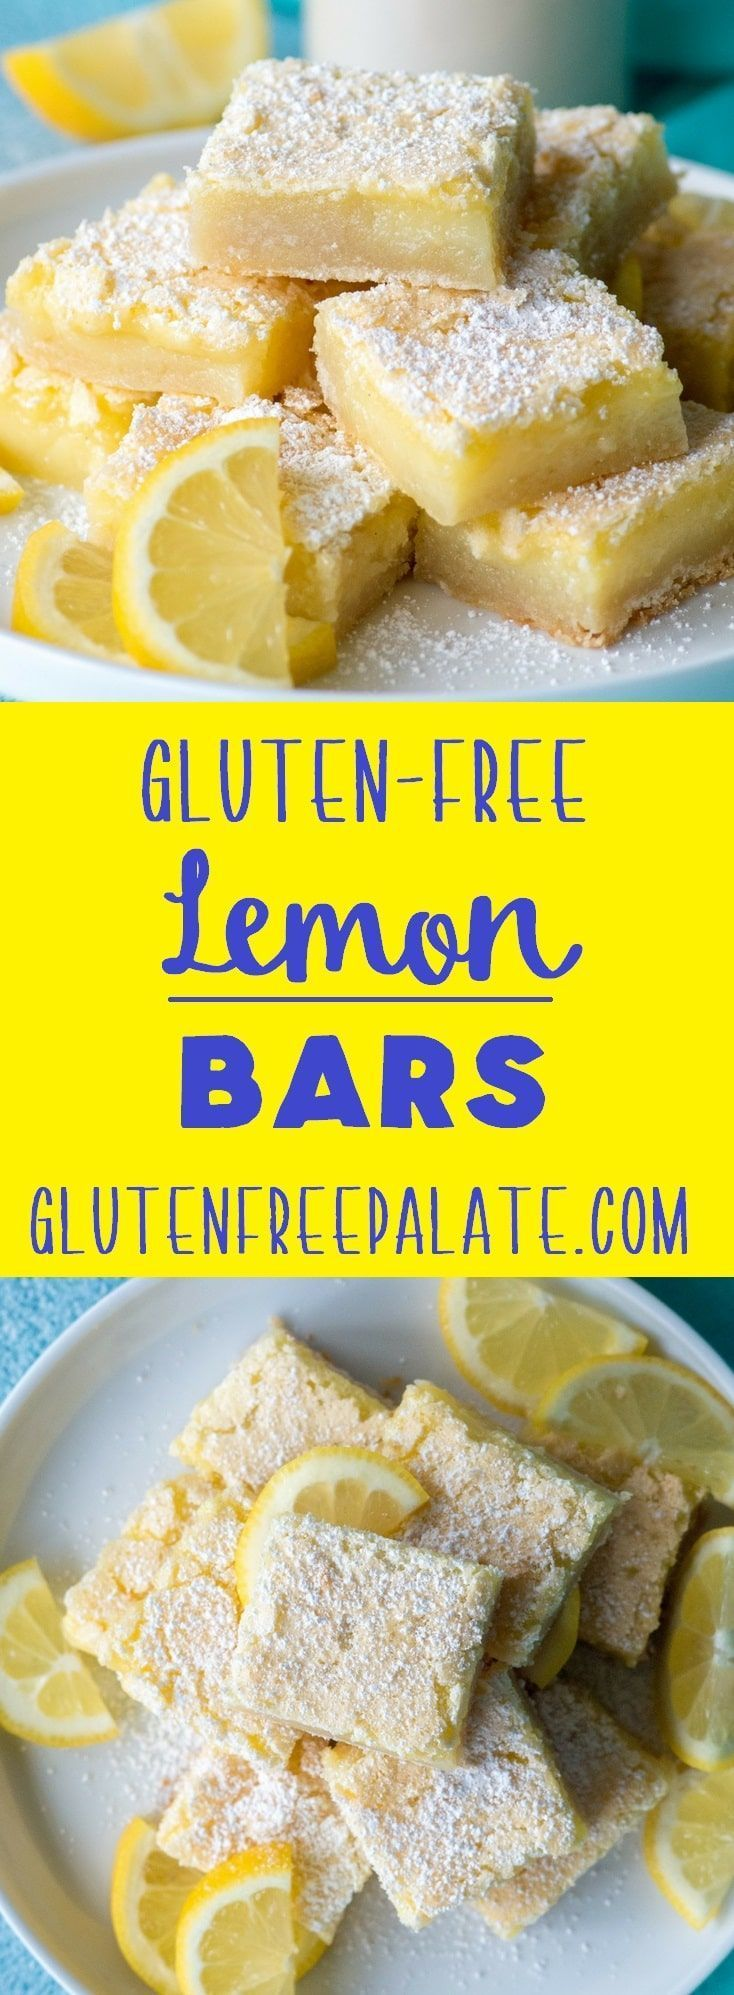 Easy Gluten-Free Lemon Bars Easy Gluten-Free Lemon Bars that are sweet, tangy, and refreshing. You are going to love how quick this recipe pulls together.